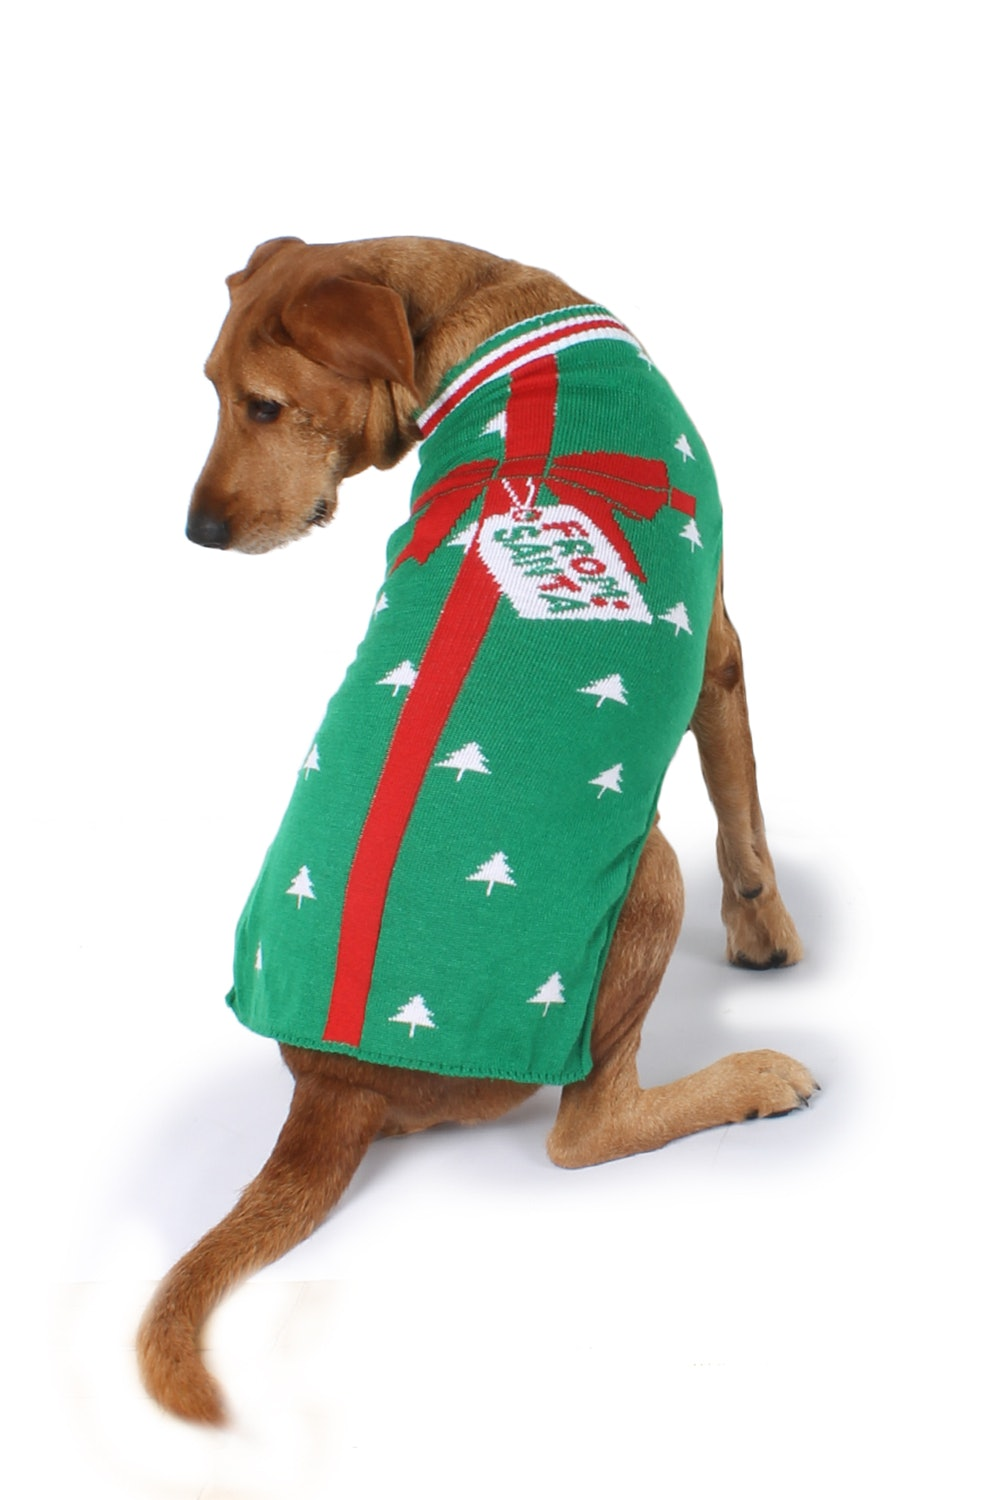 5 Matching Christmas Sweaters For Dogs Owners That Are Pawfect For